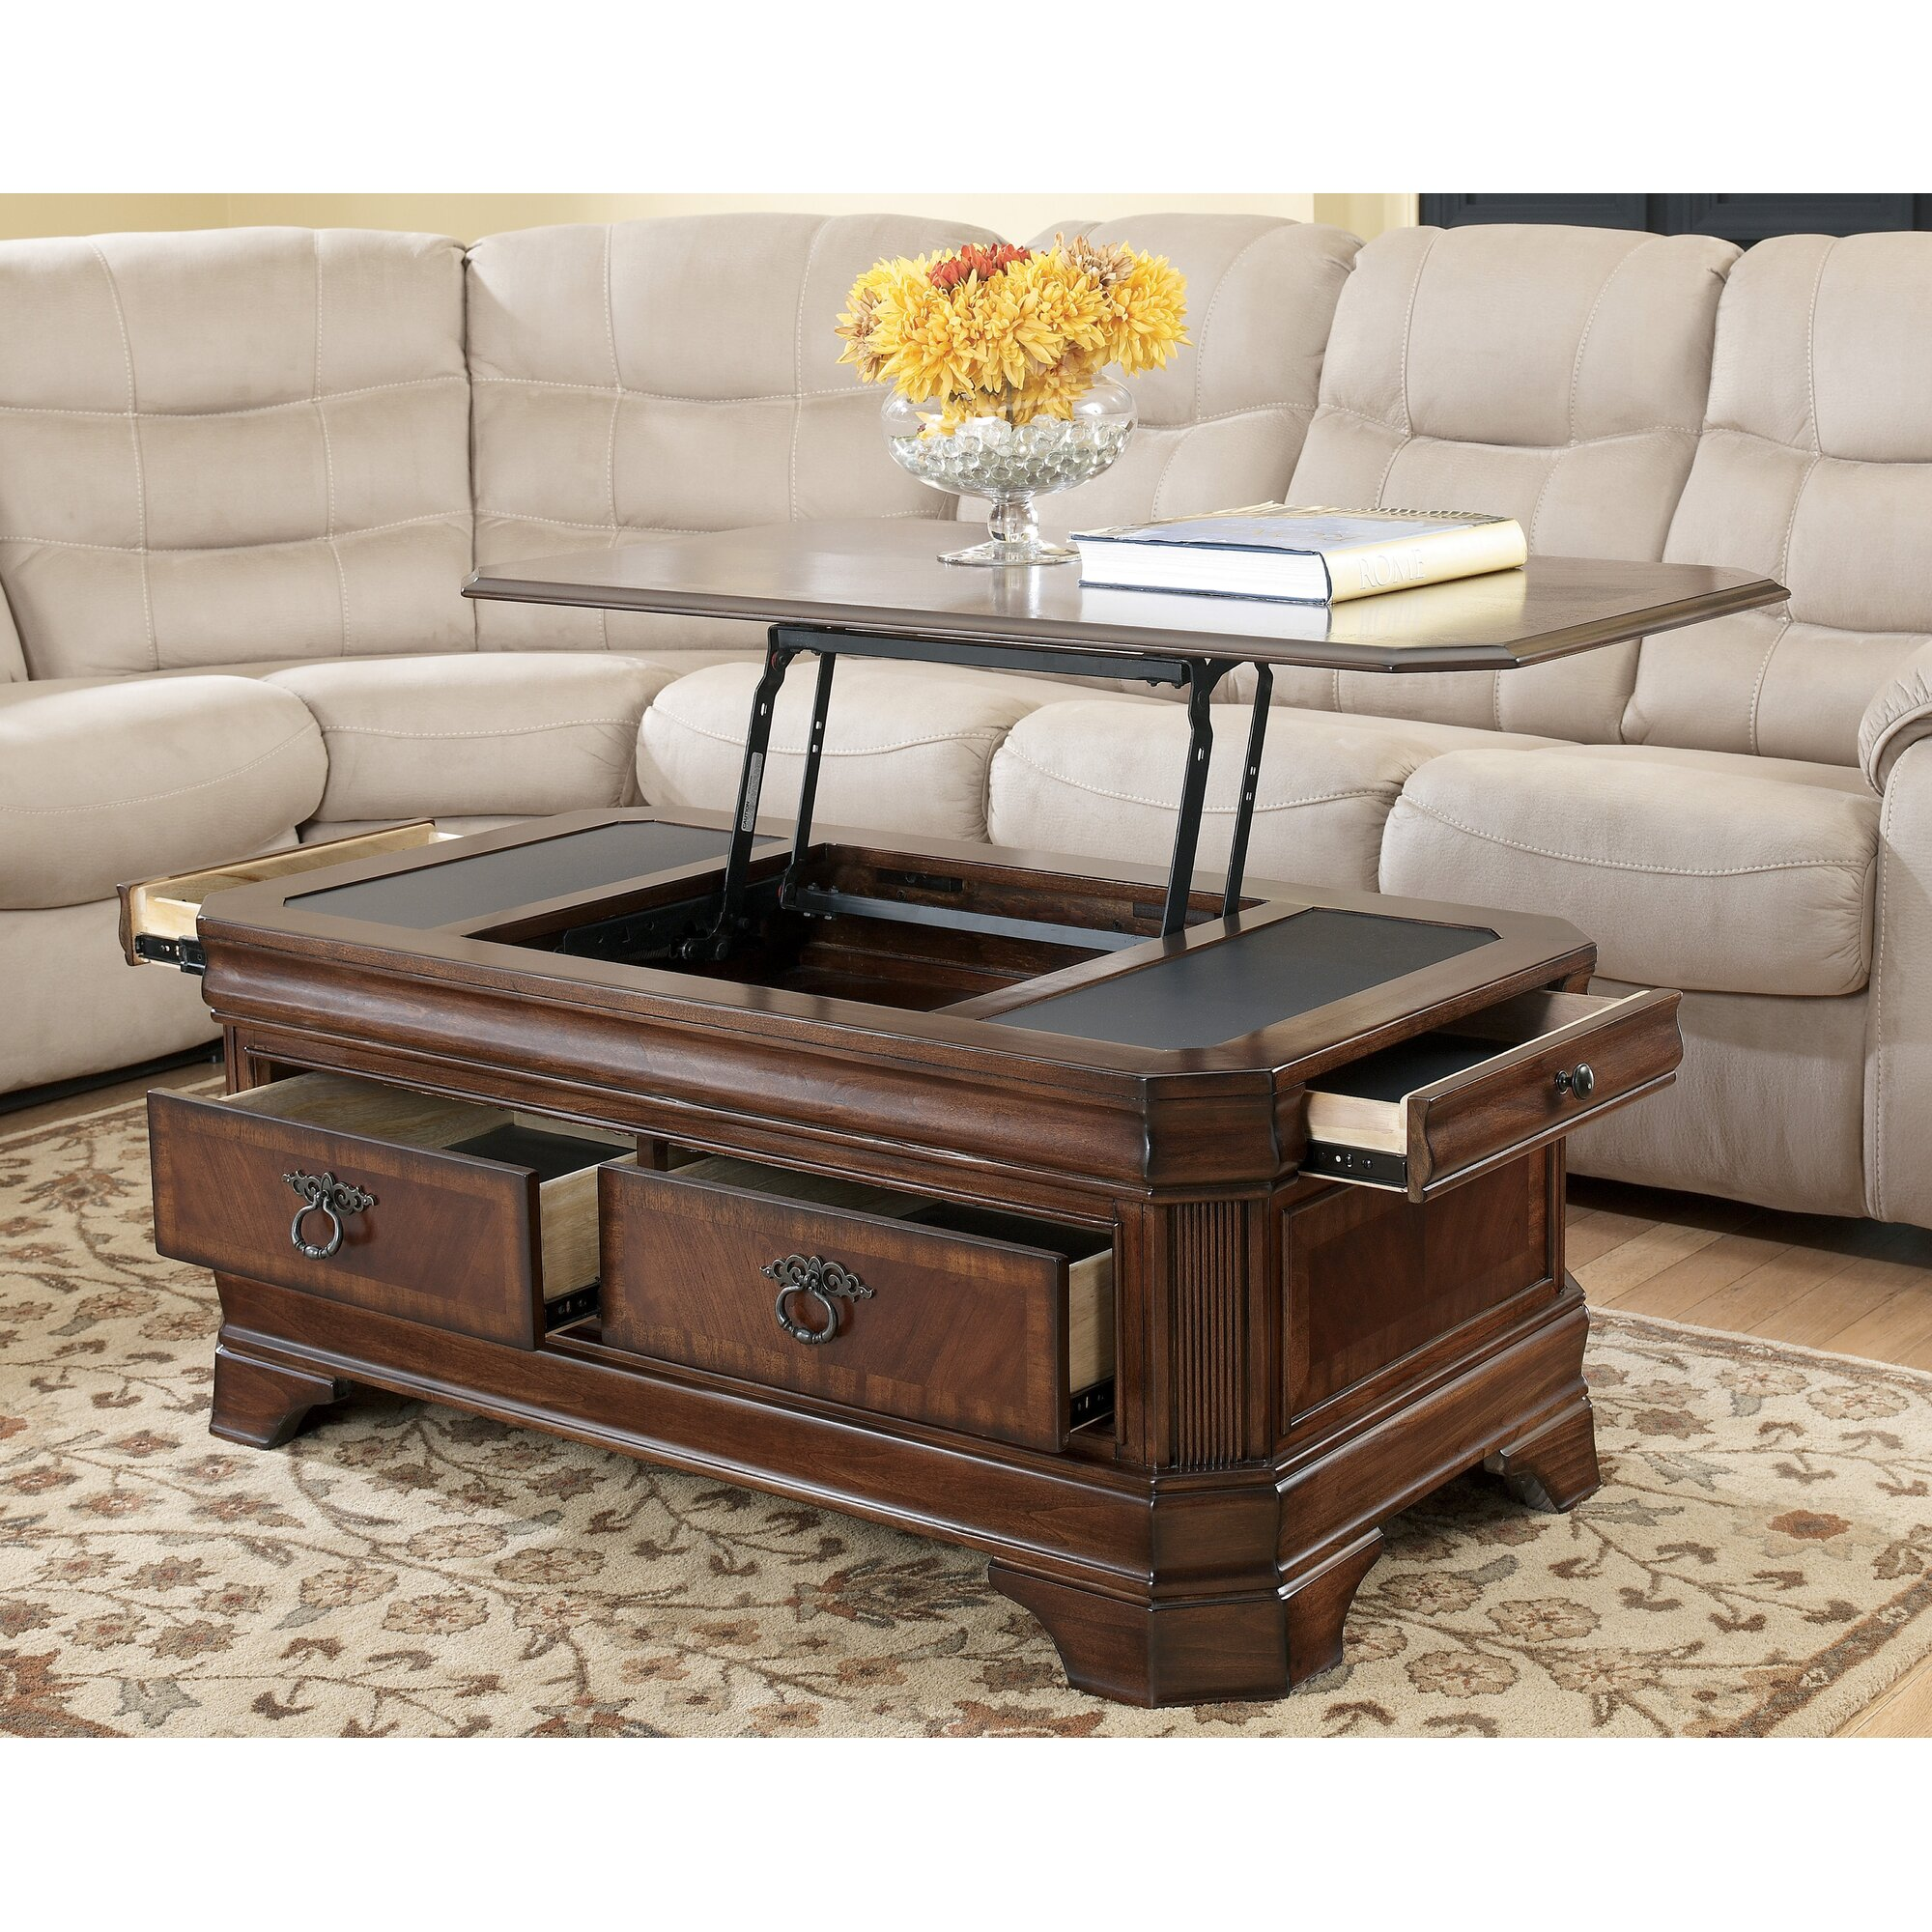 darby home co busse trunk coffee table with lift top reviews. Black Bedroom Furniture Sets. Home Design Ideas